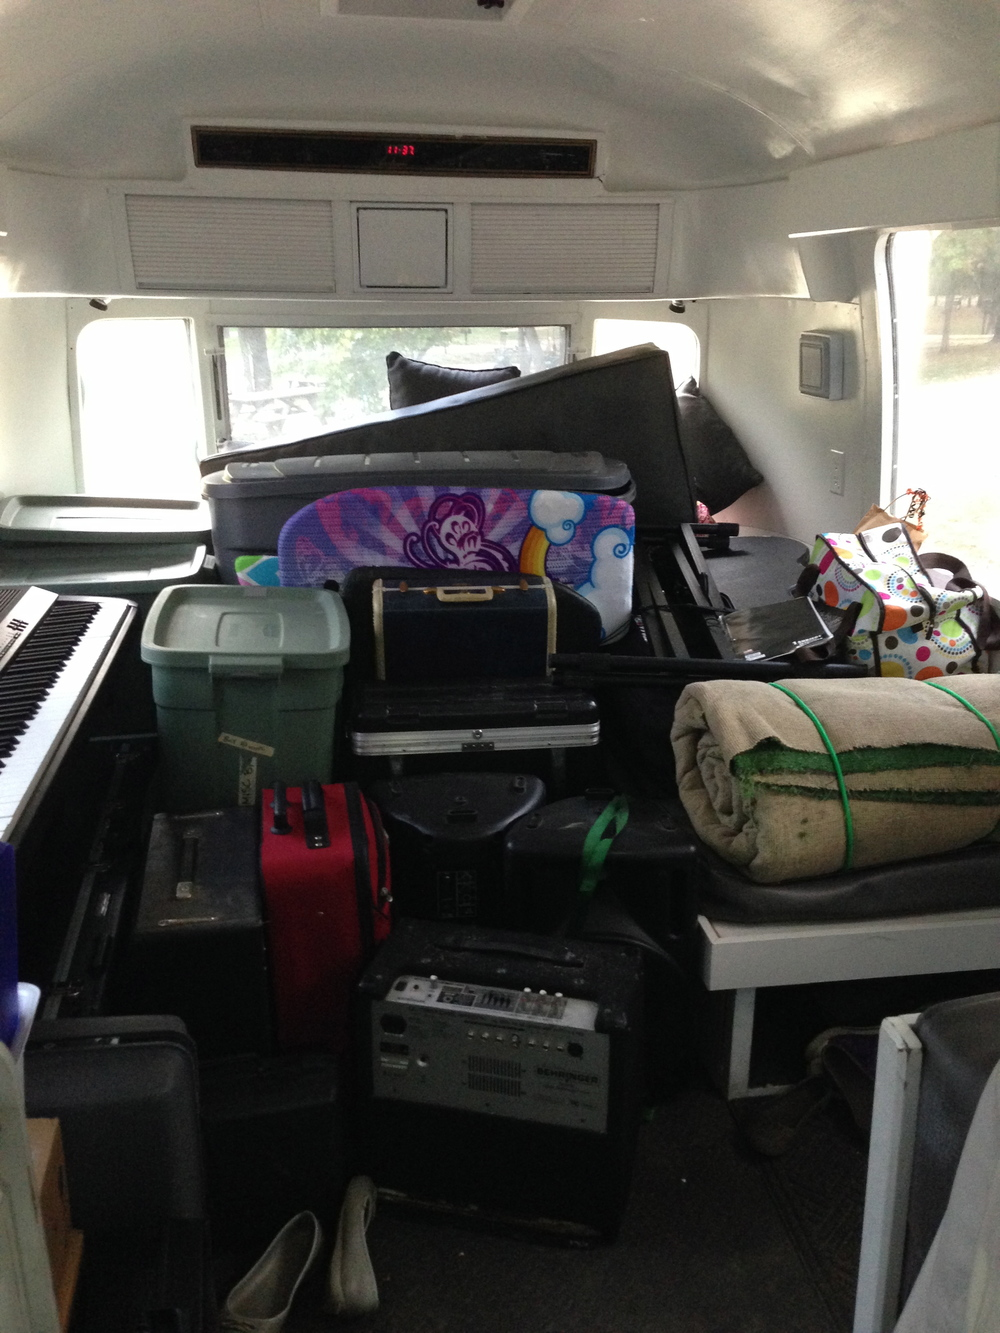 We had to unpack all of the music gear into the Airstream for the day!